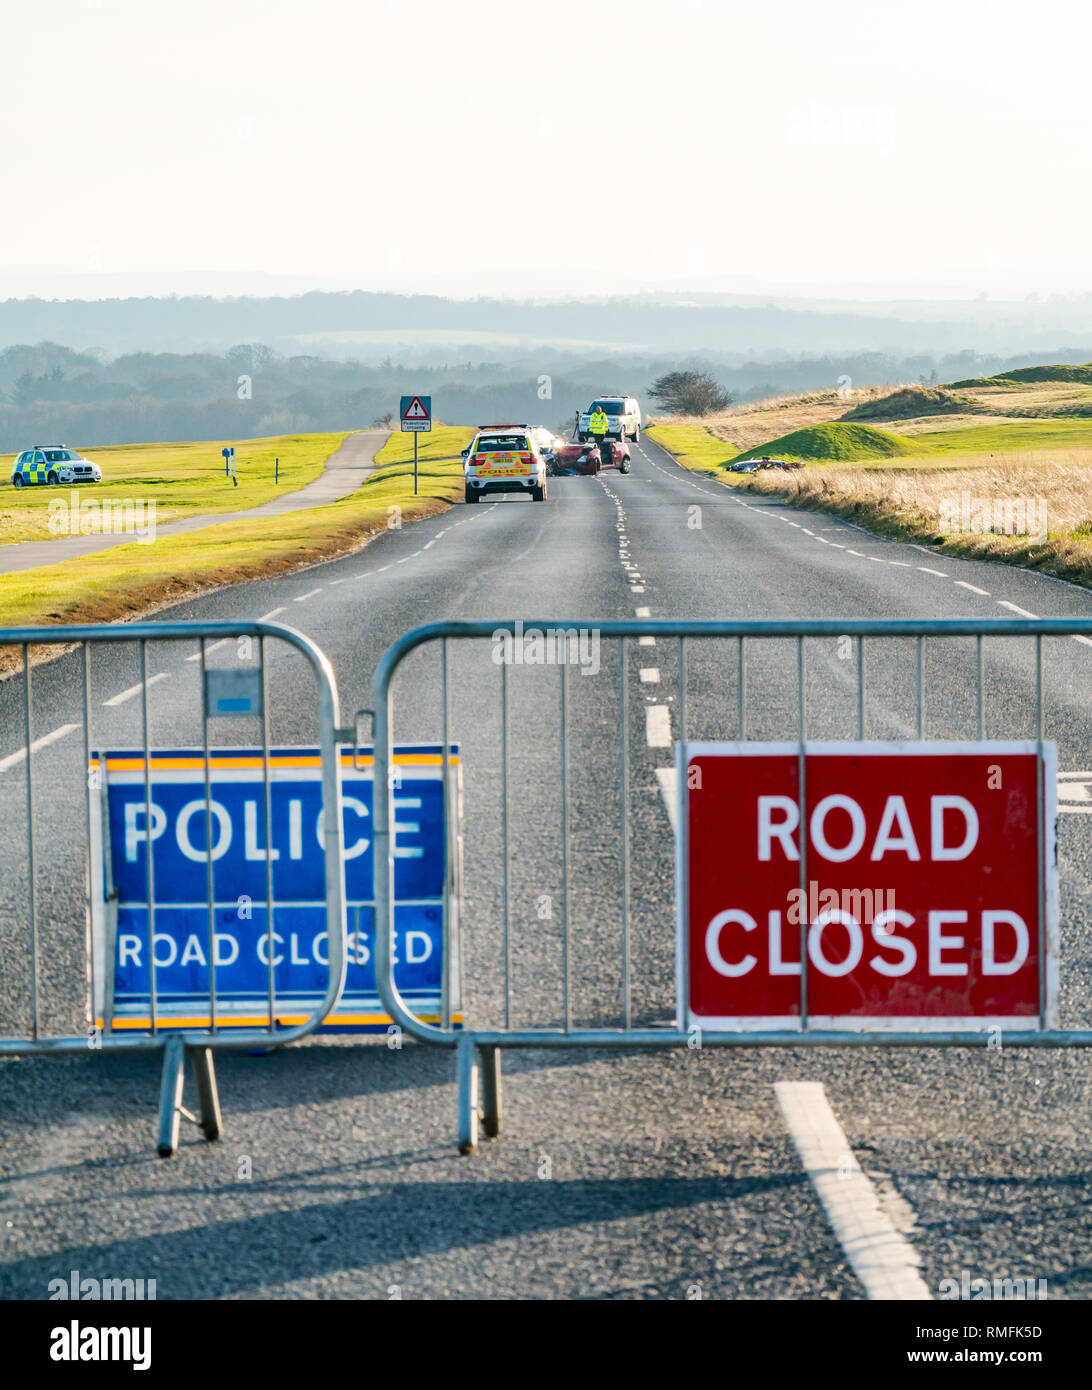 Gullane, East Lothian, Scotland, United Kingdom, 15th February 2019. Two cars involved in a collision crash on the A198 coast road between Aberlady and Gullane on the straight section outside Gullane golf course on West Links Road. The crash happened around 1.00pm and the was closed for hours. Noone was  seriously injured but one person was taken to hospital. The police close the road with barriers and road closed signs. Three pensioners involved in the collision were taken to hospital - Stock Image